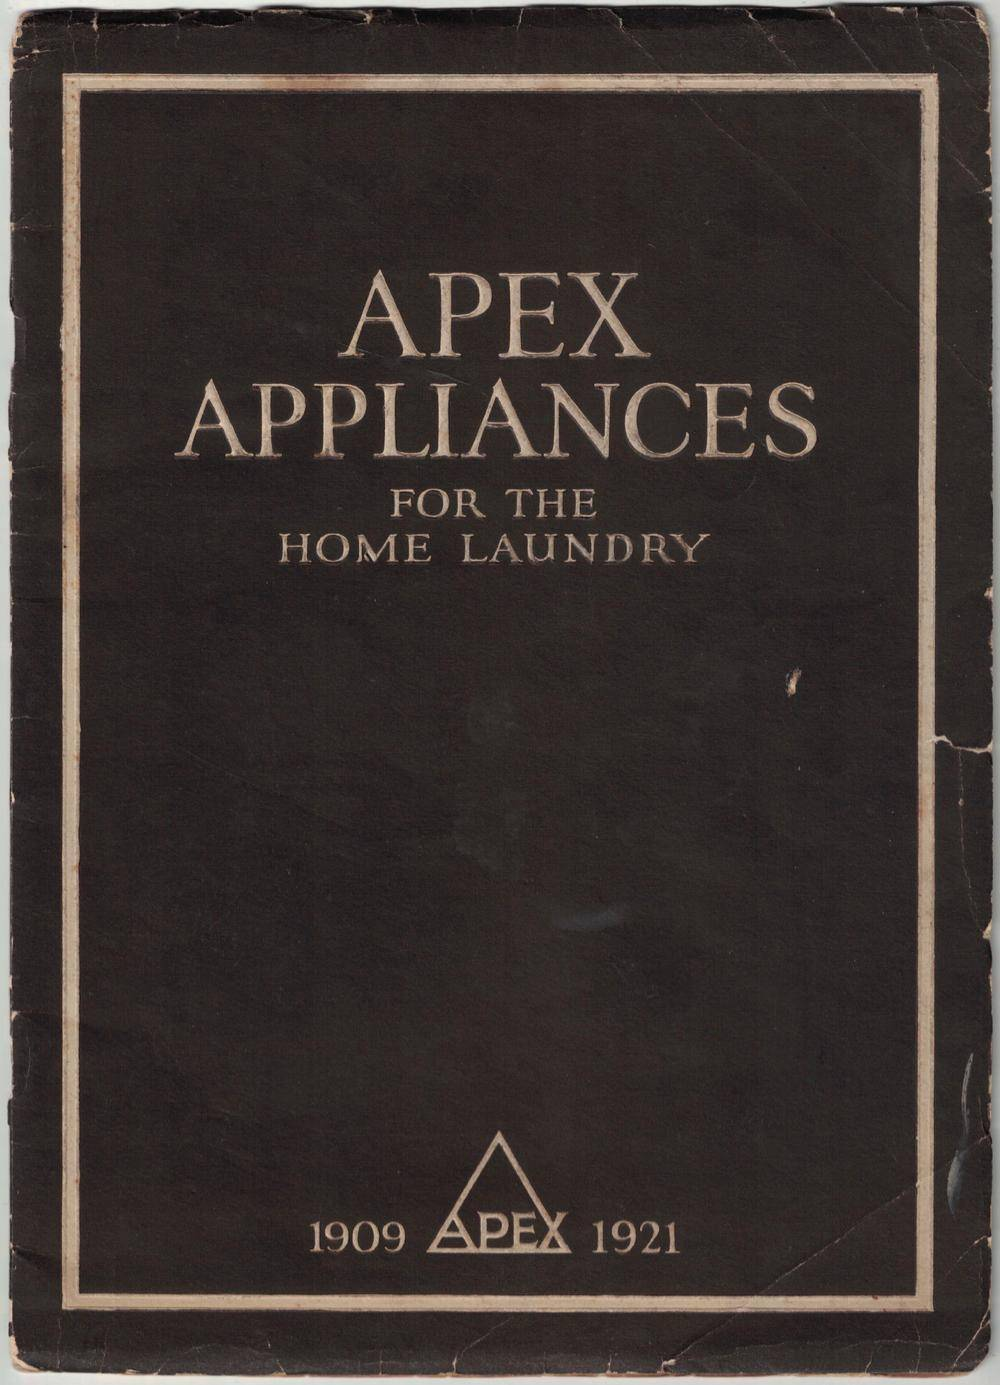 [TRADE CATALOGUES] [APPLIANCES] Apex Appliances for the Home Laundry Apex Appliance Company [Good] [Softcover]